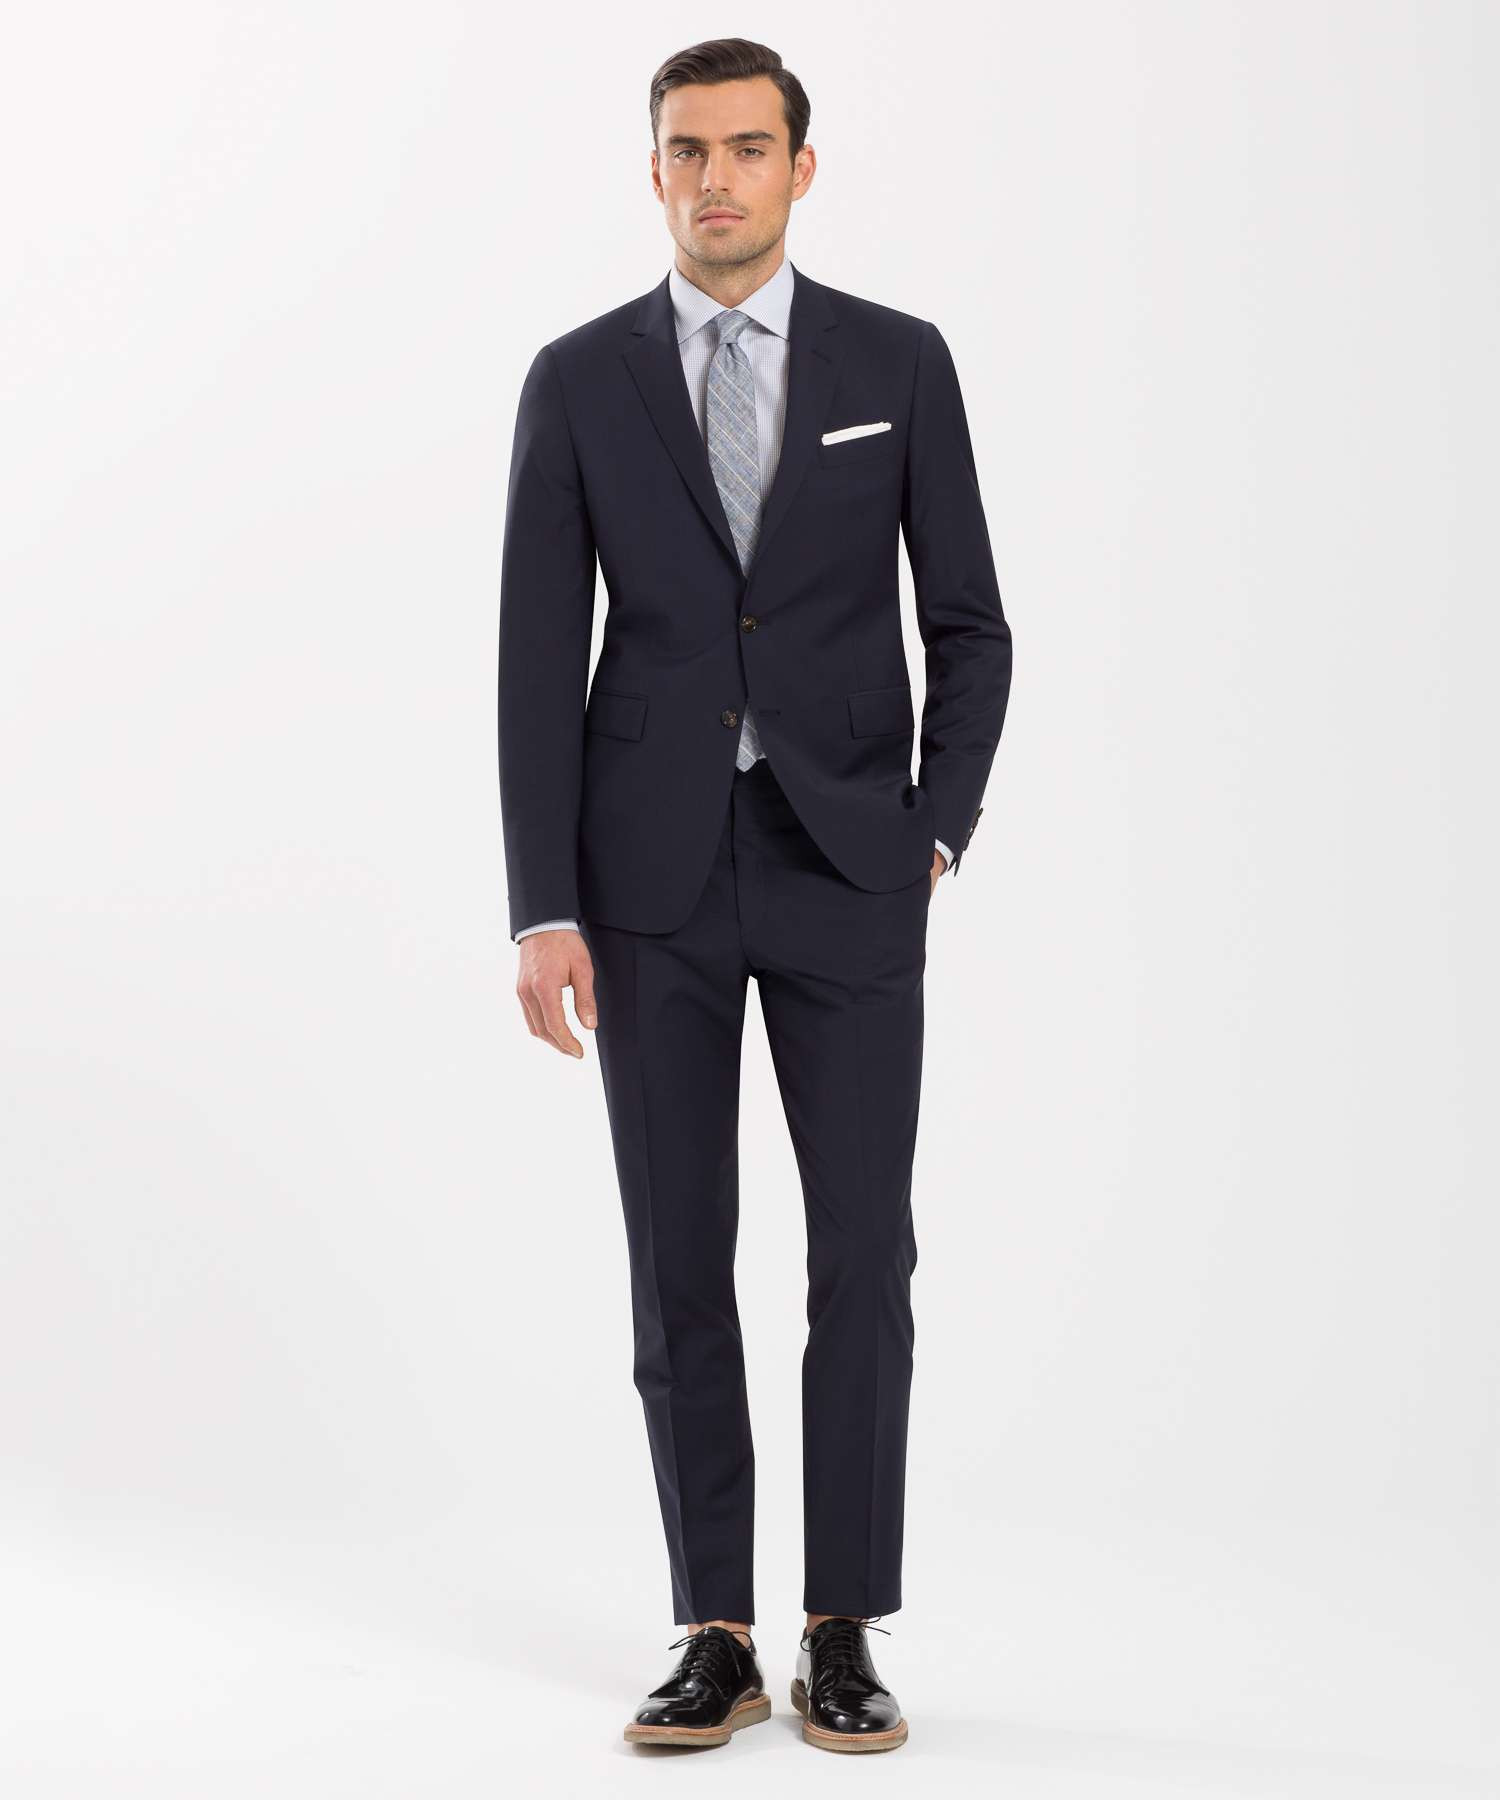 Todd Snyder The Mayfair White Label Suit In Navy In Gray